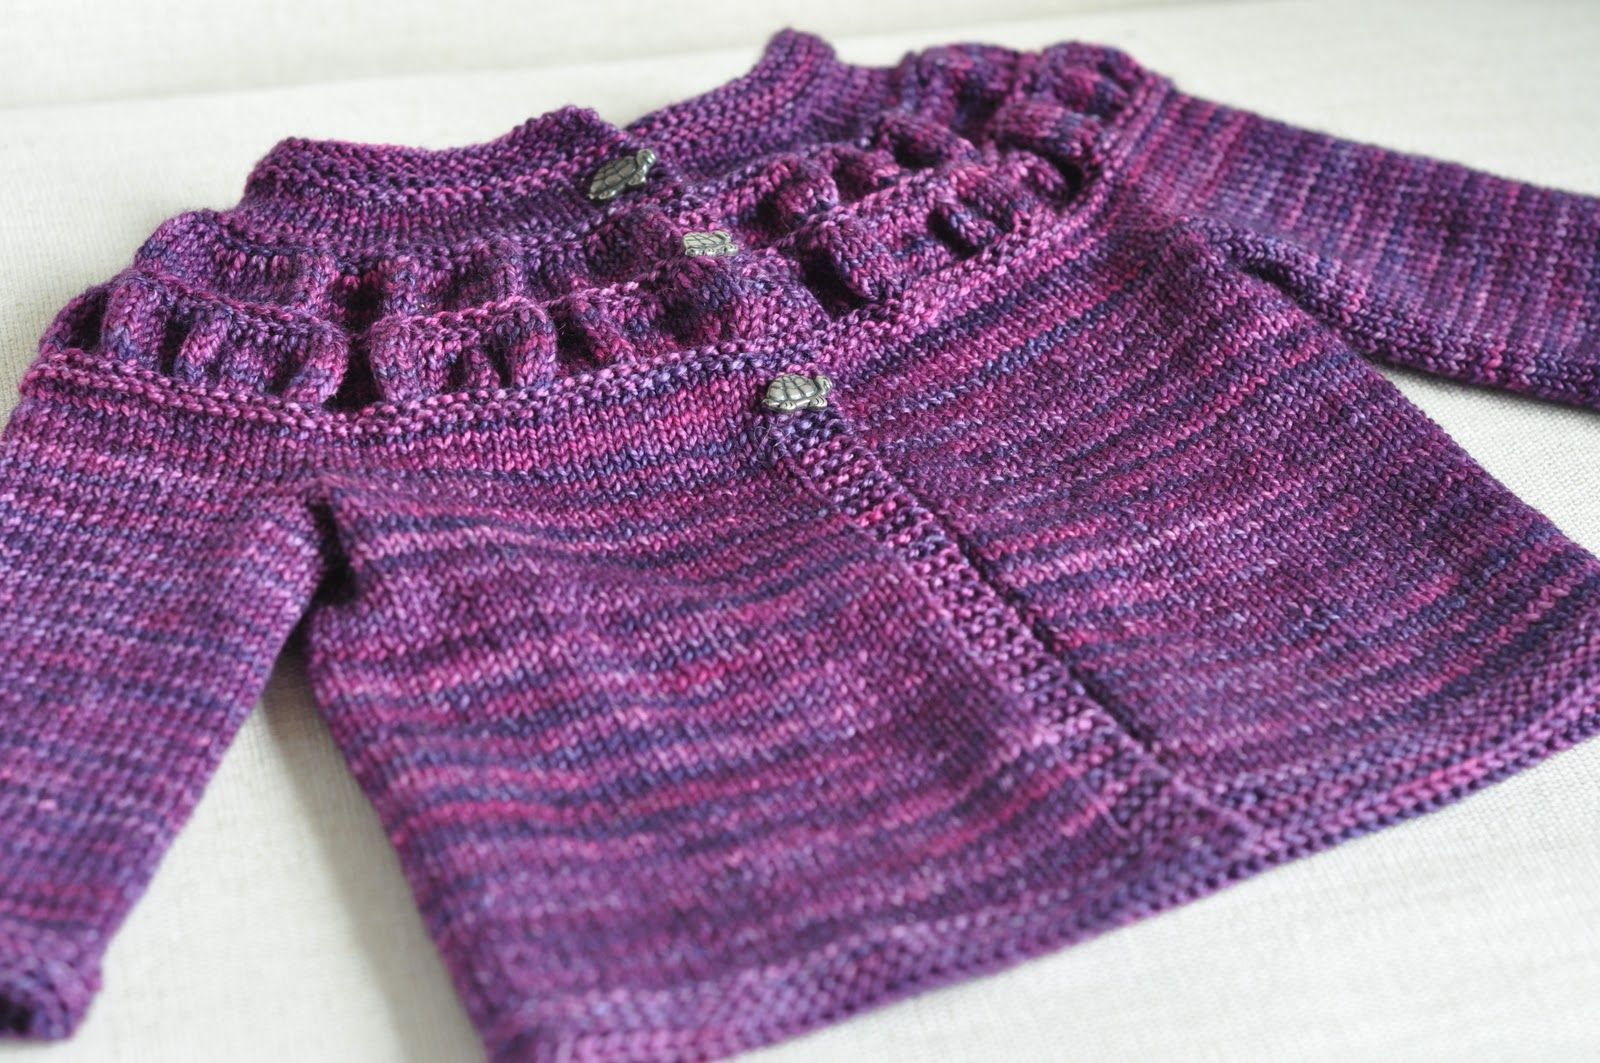 cute baby sweater | All about purple, lavender & lilac | Pinterest ...